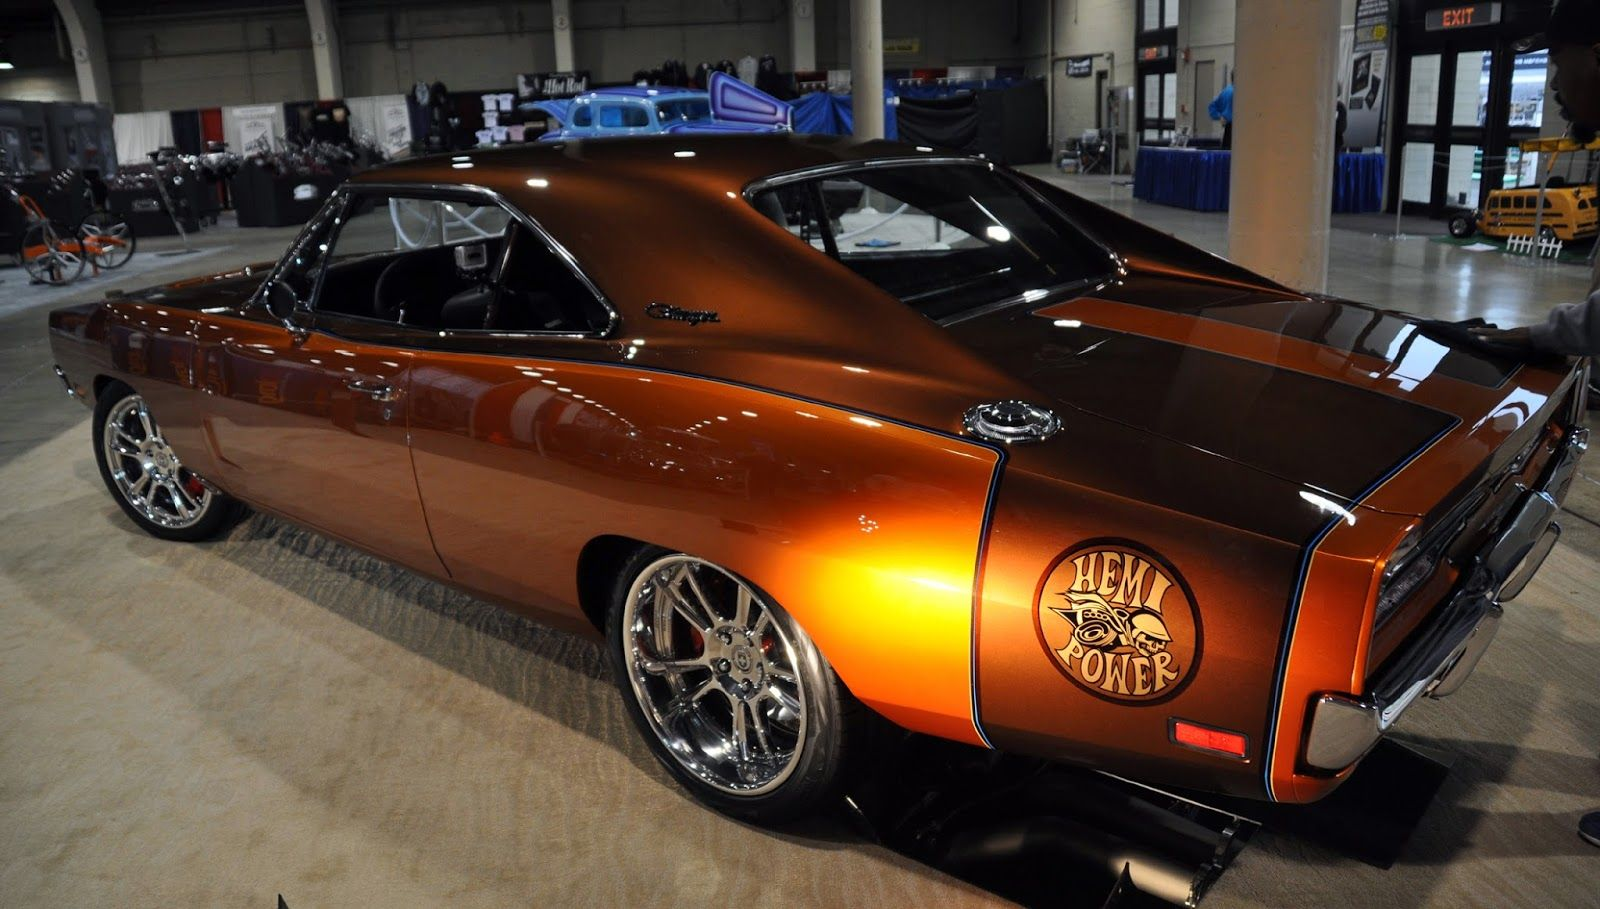 Just a car guy Hinkle's Hot Rods has another hit